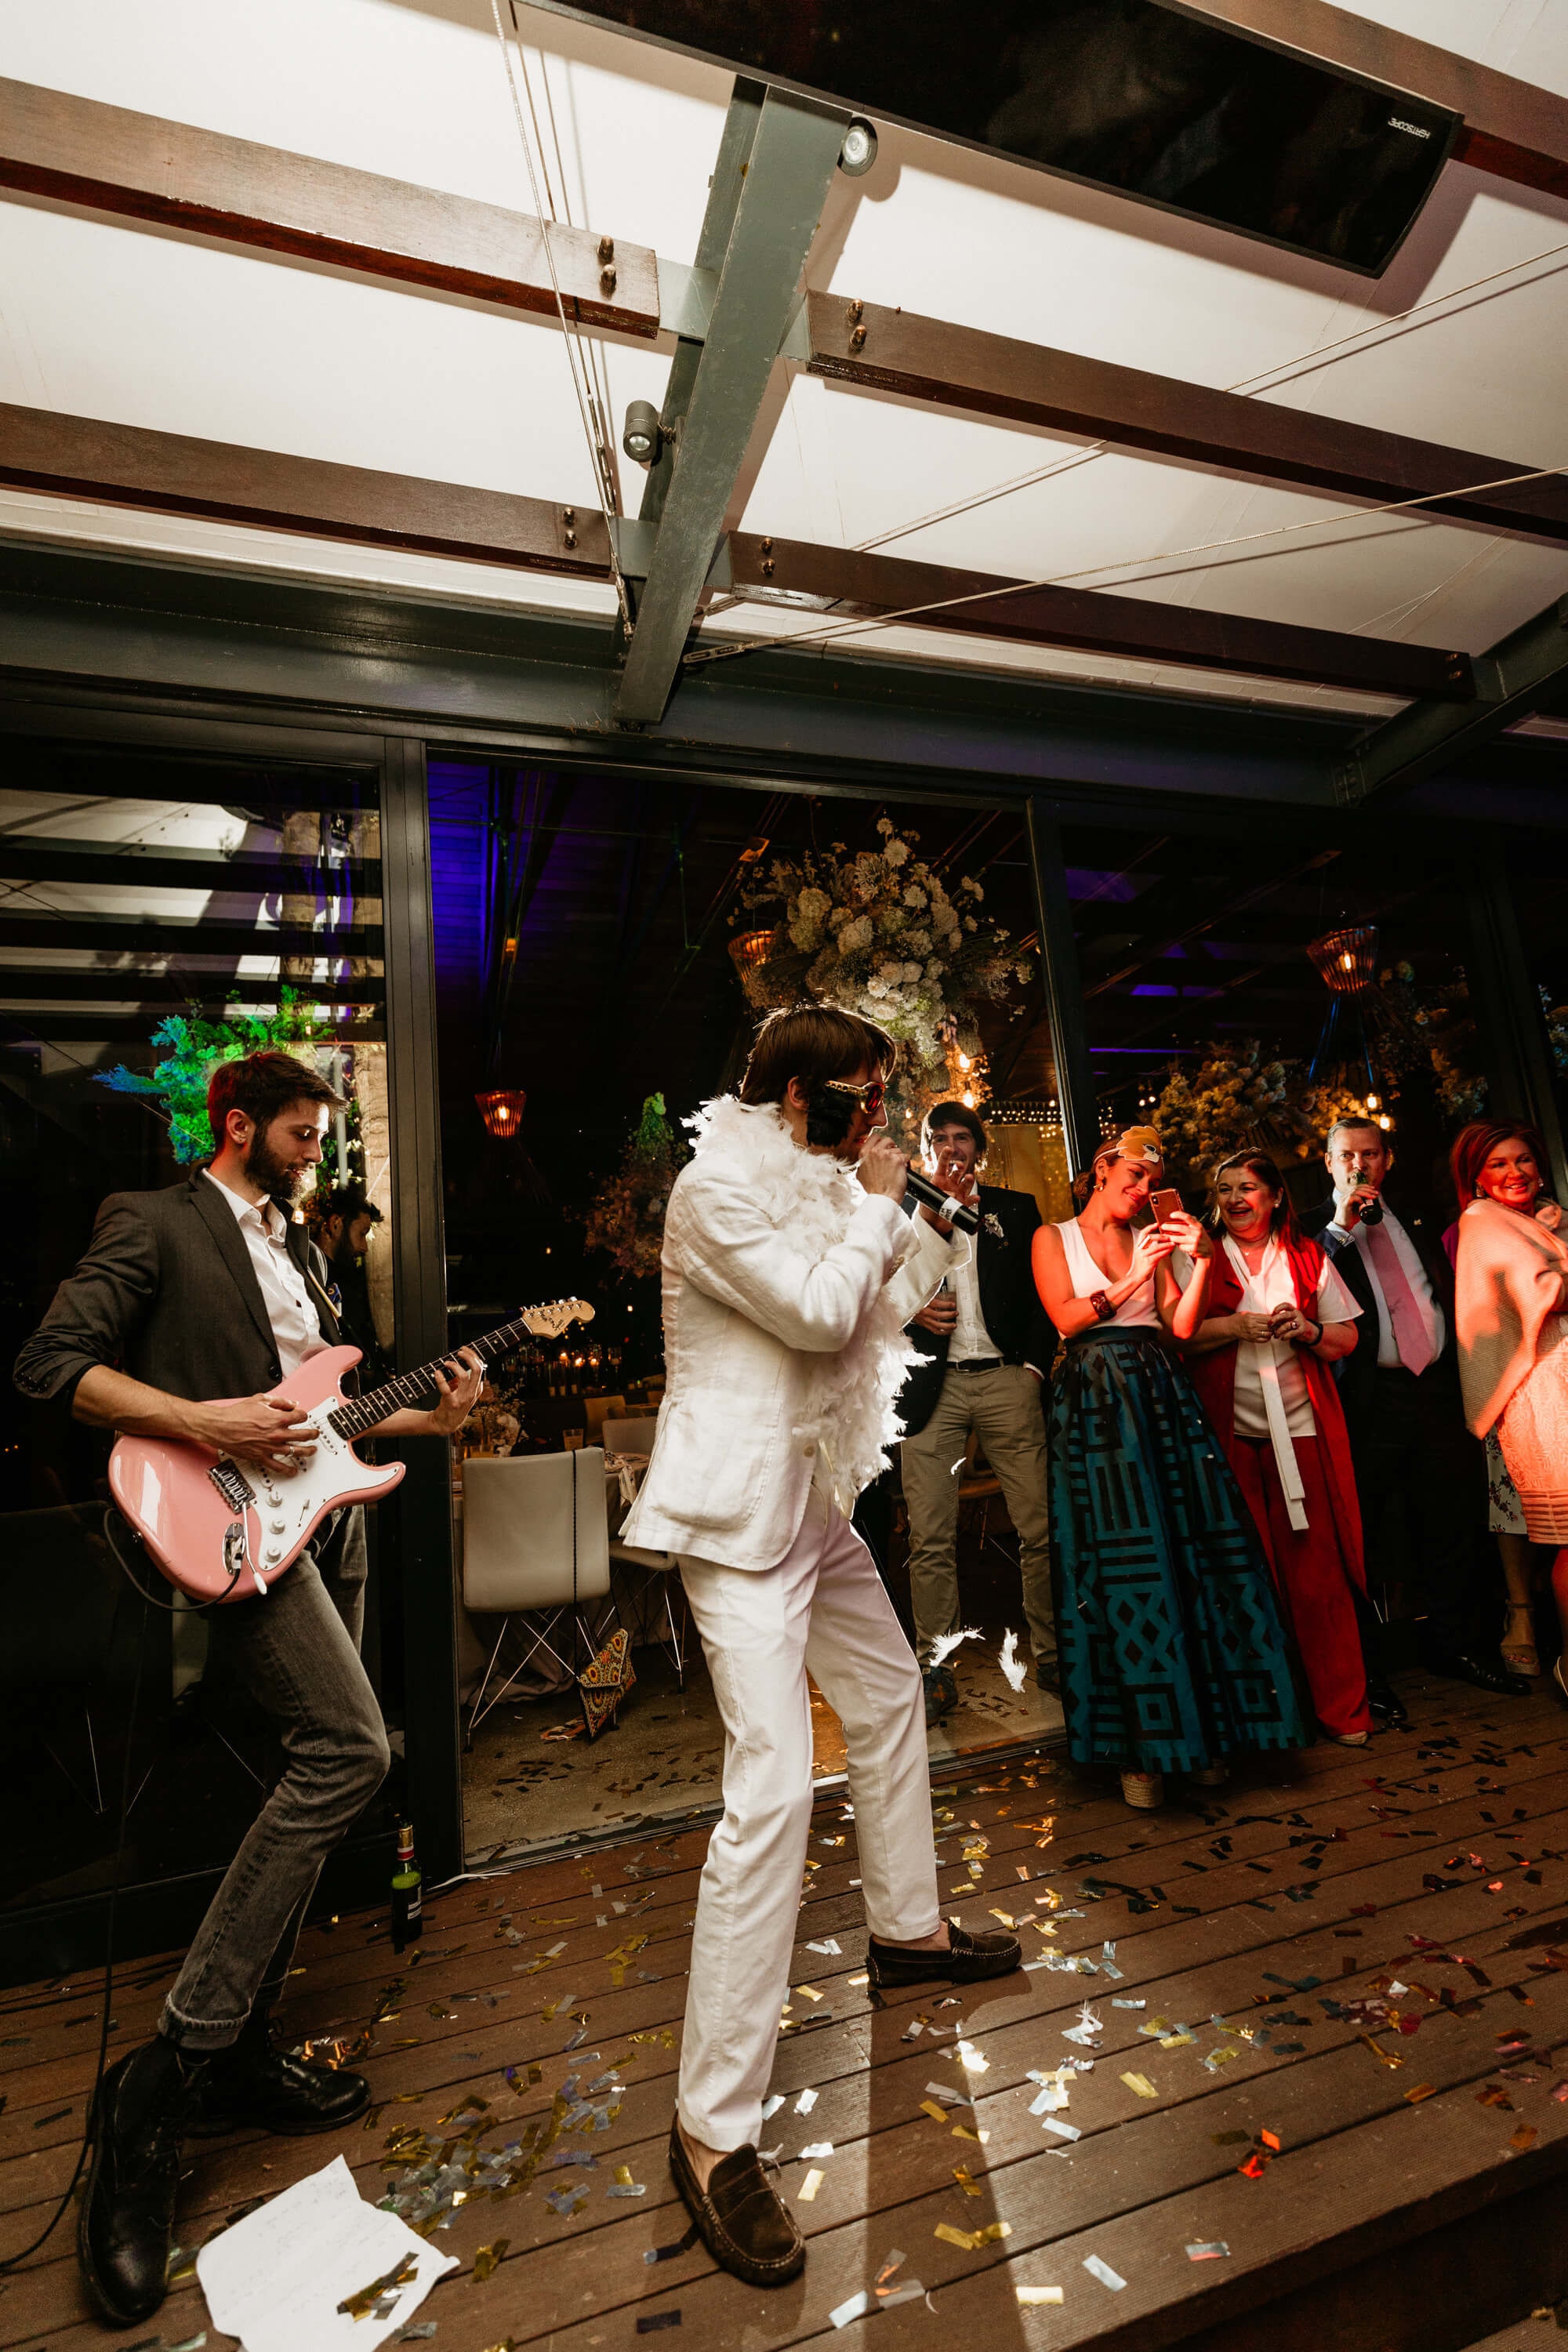 Elvis impersonator and live electric guitarist rocking the stage.